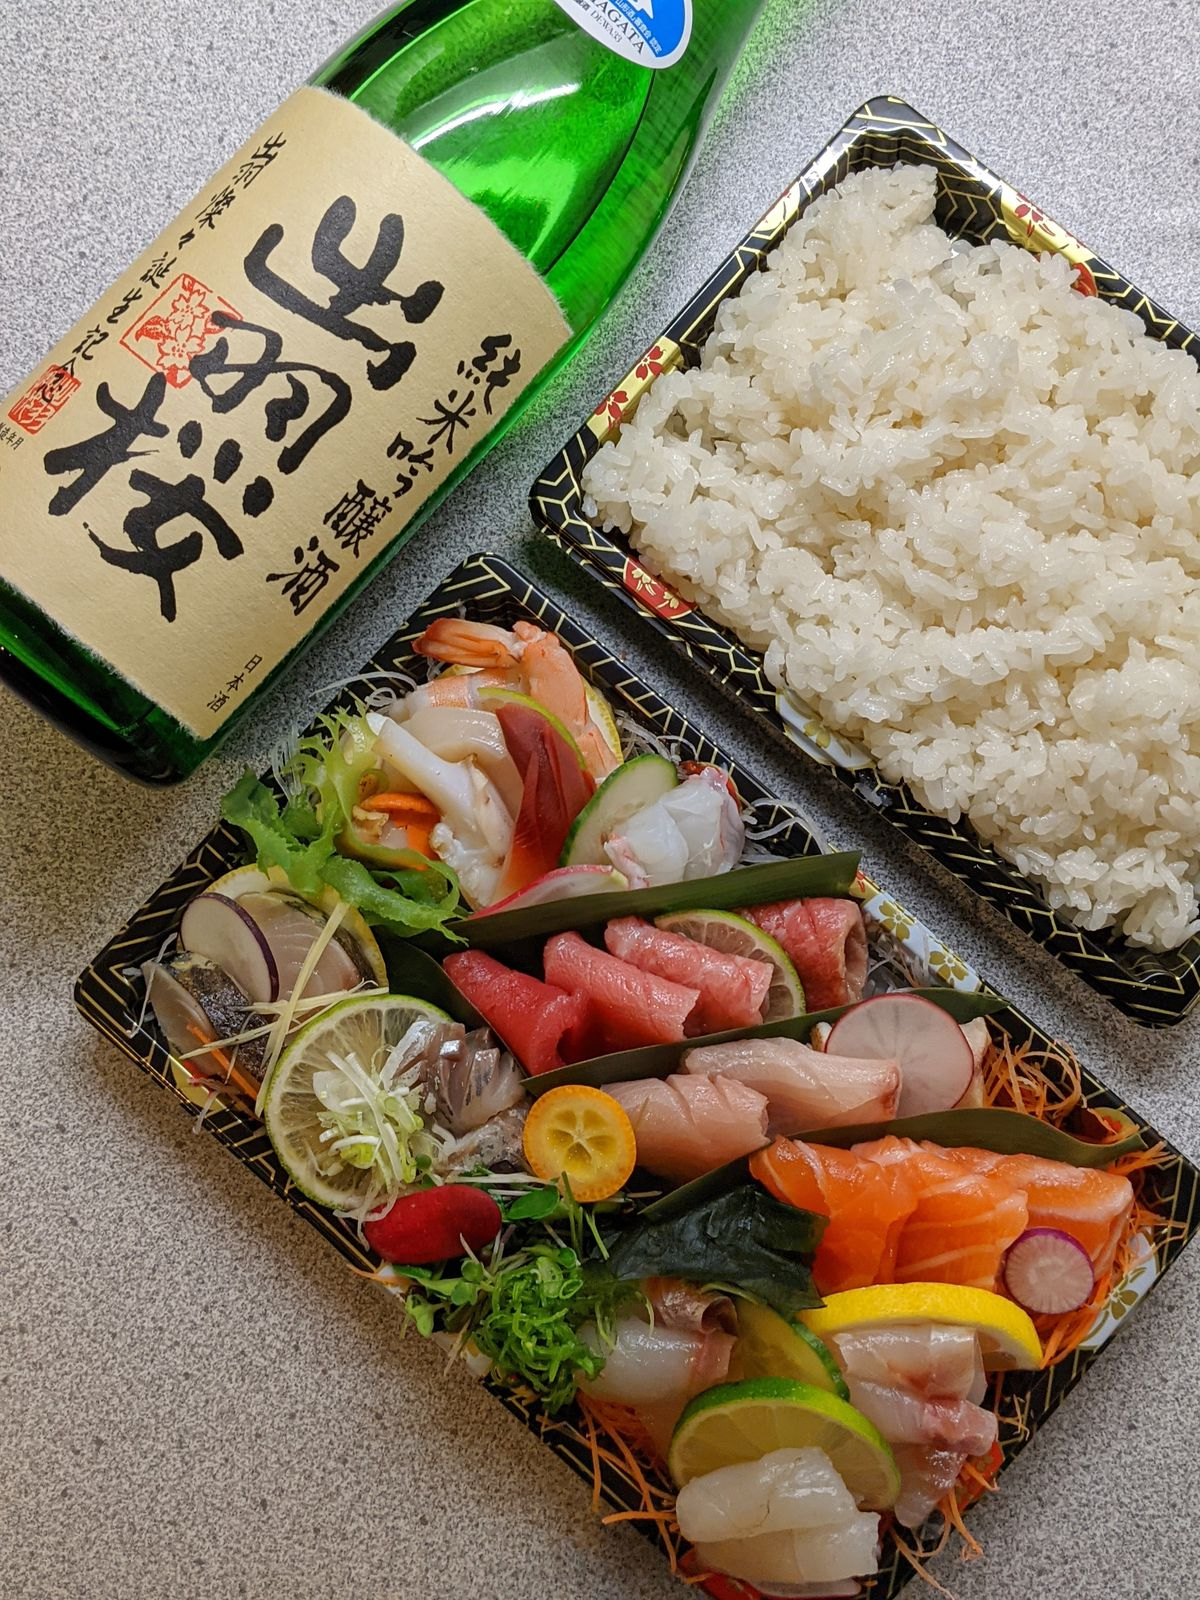 Sushi Tetsu, a meal kit available through Big Night. One of London's finest Japanese restaurants, which has been forced to close as a result of the coronavirus pandemic